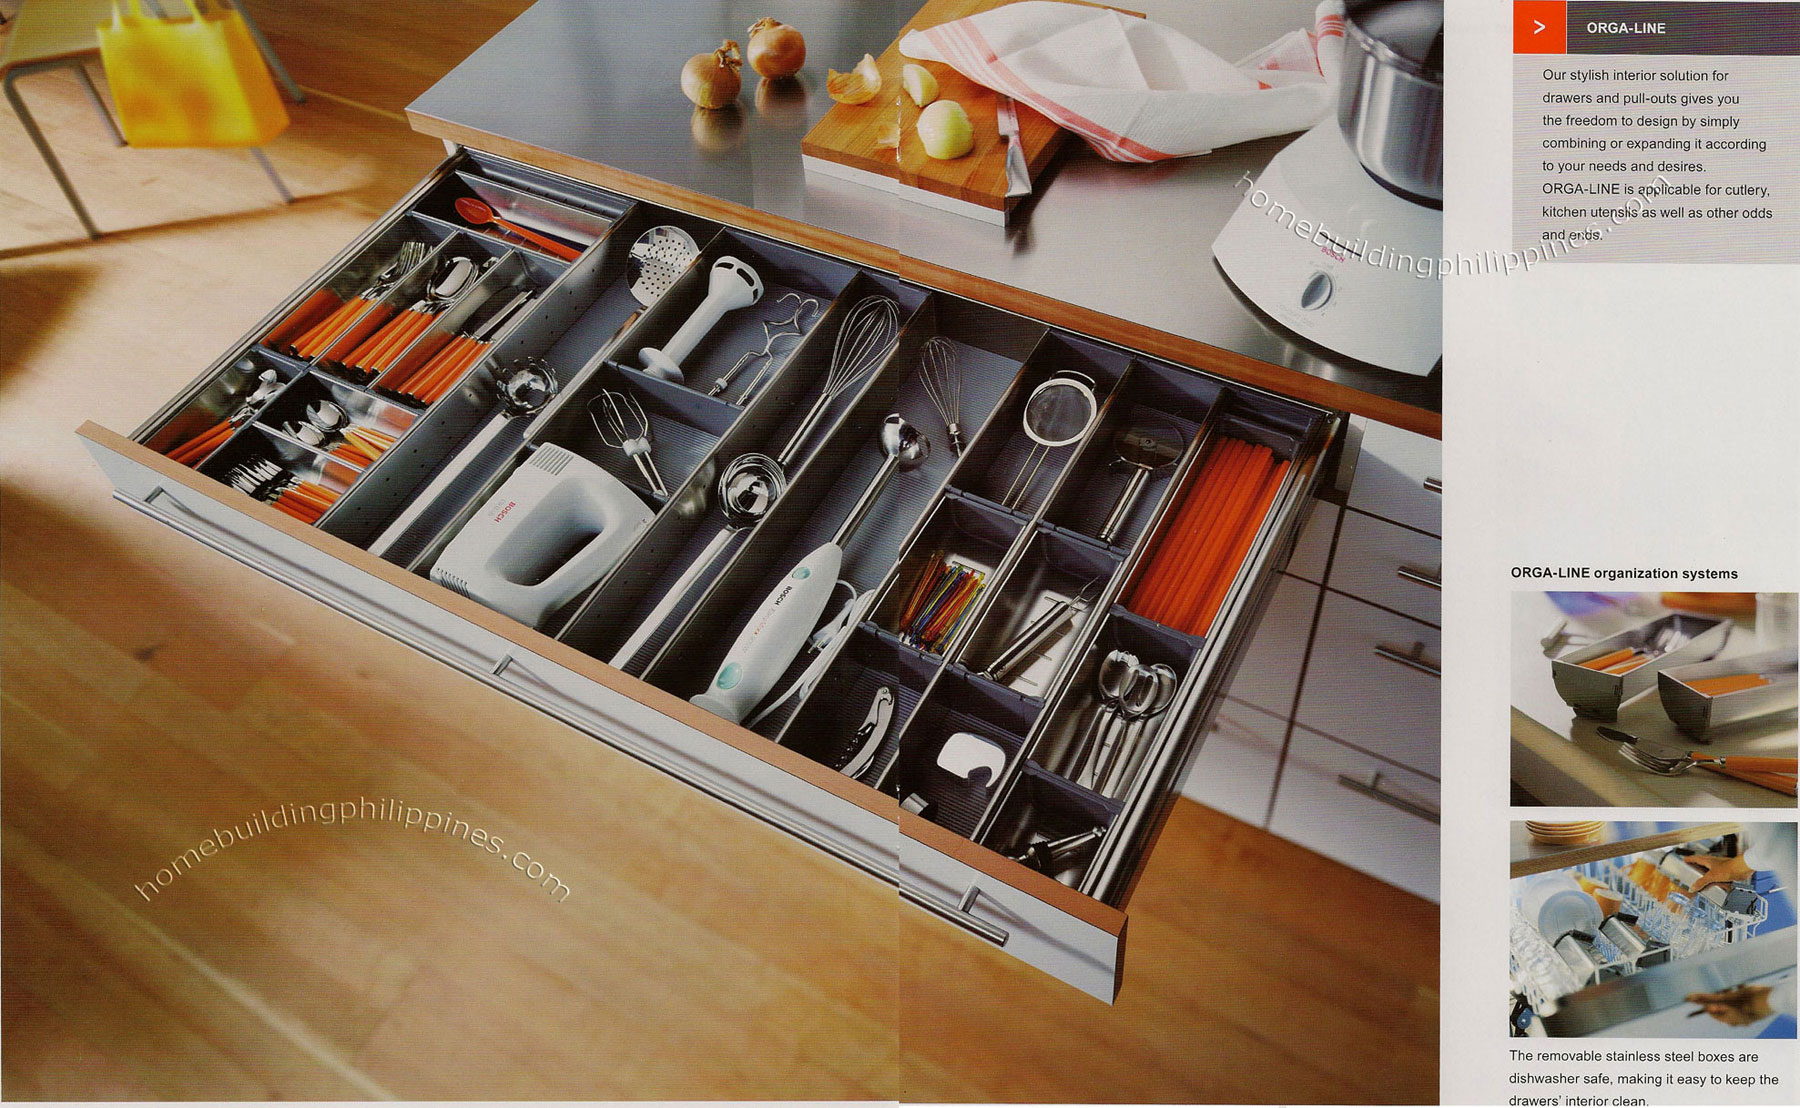 Organizing Kitchen Drawers And Cabinets Orga Line Drawers And Pull Outs For Organizing Kitchen